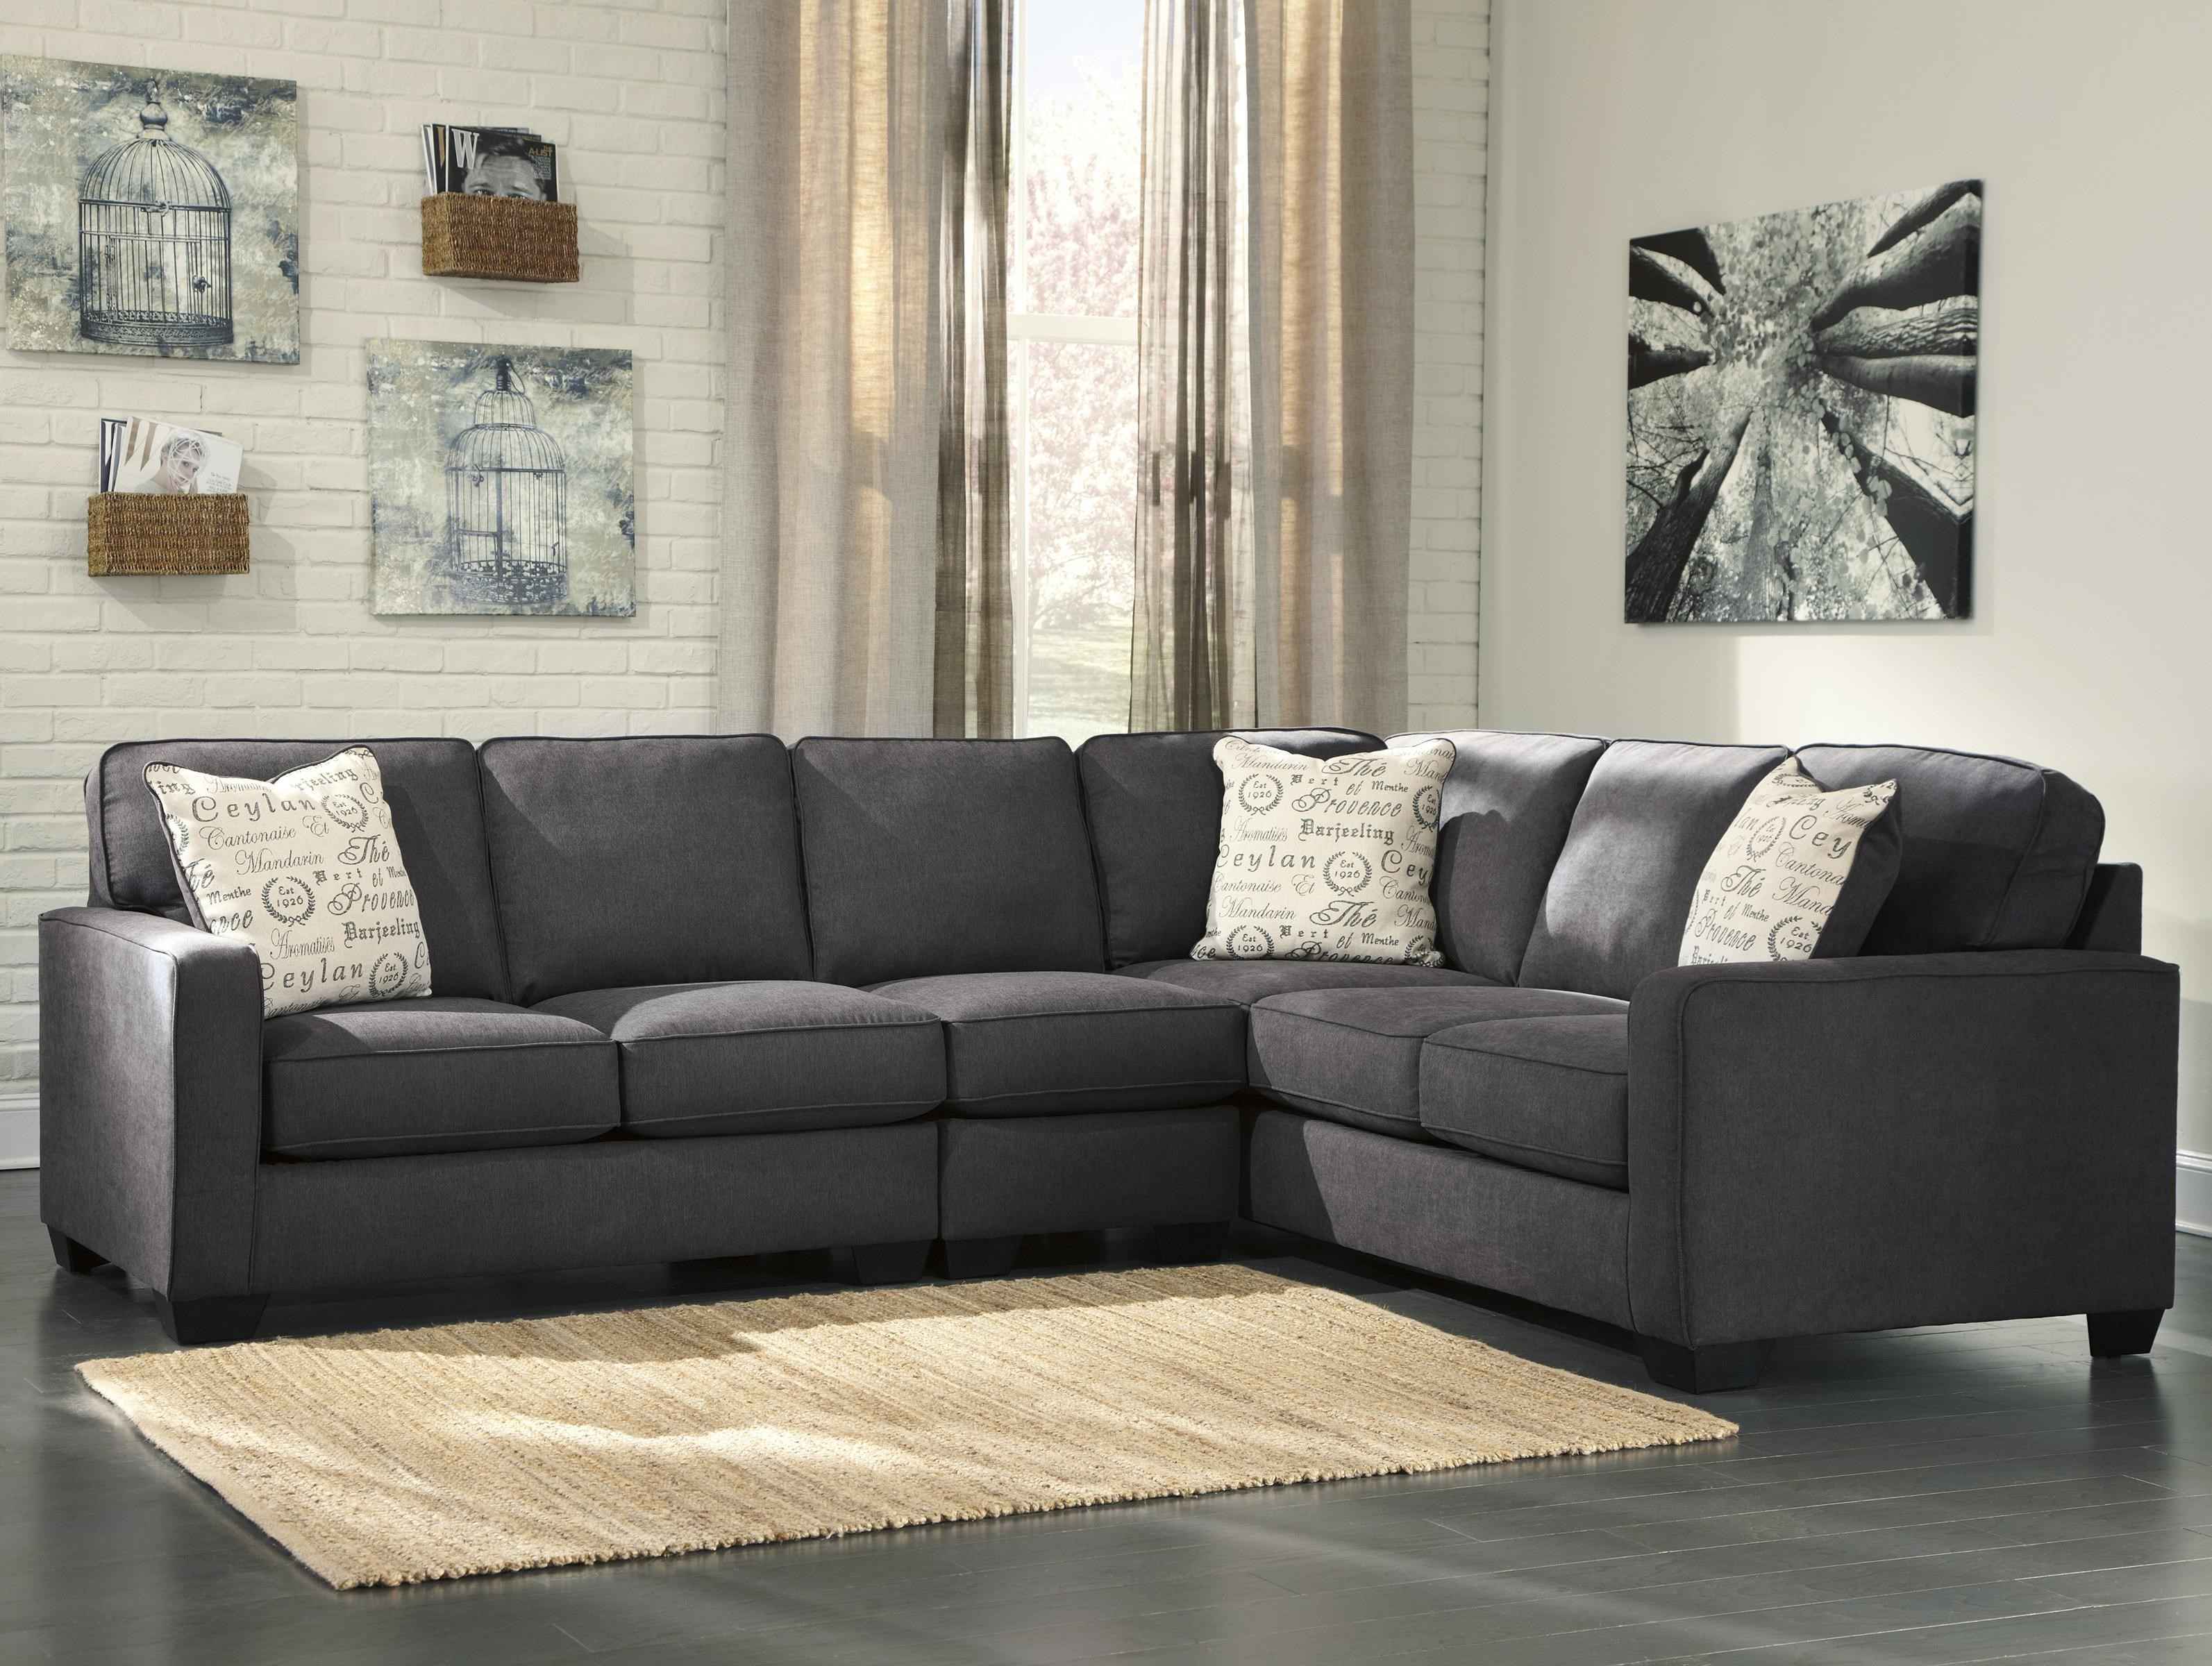 Signature Design By Ashley Alenya   Charcoal 3 Piece Sectional With Left  Loveseat